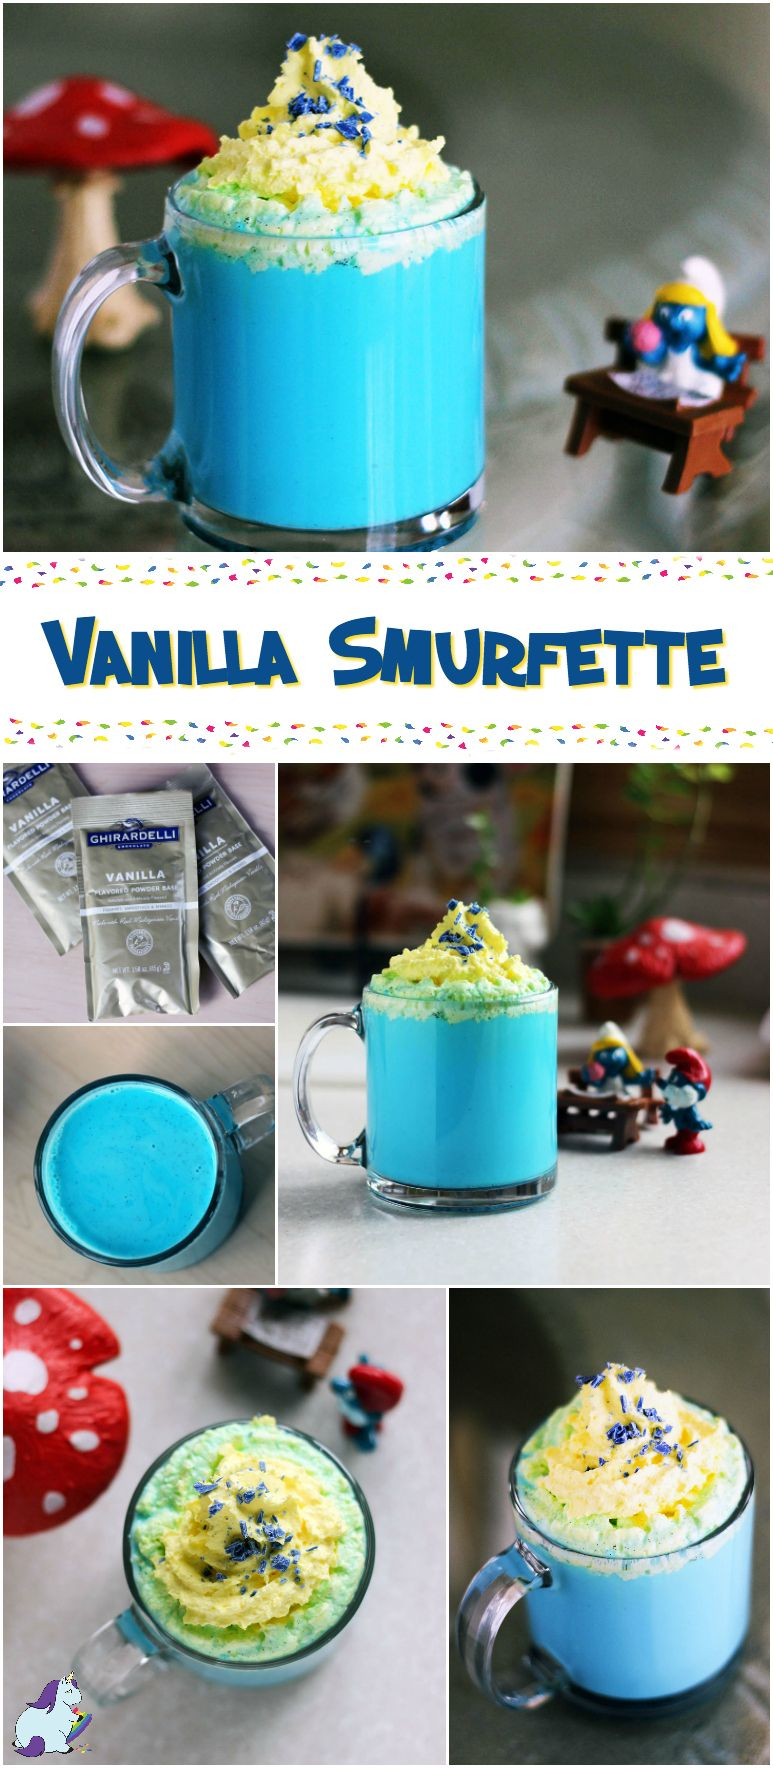 drink recipes recipe smurf smurfs drinks yummy easy smurfette fans alcoholic amagicalmess food beer